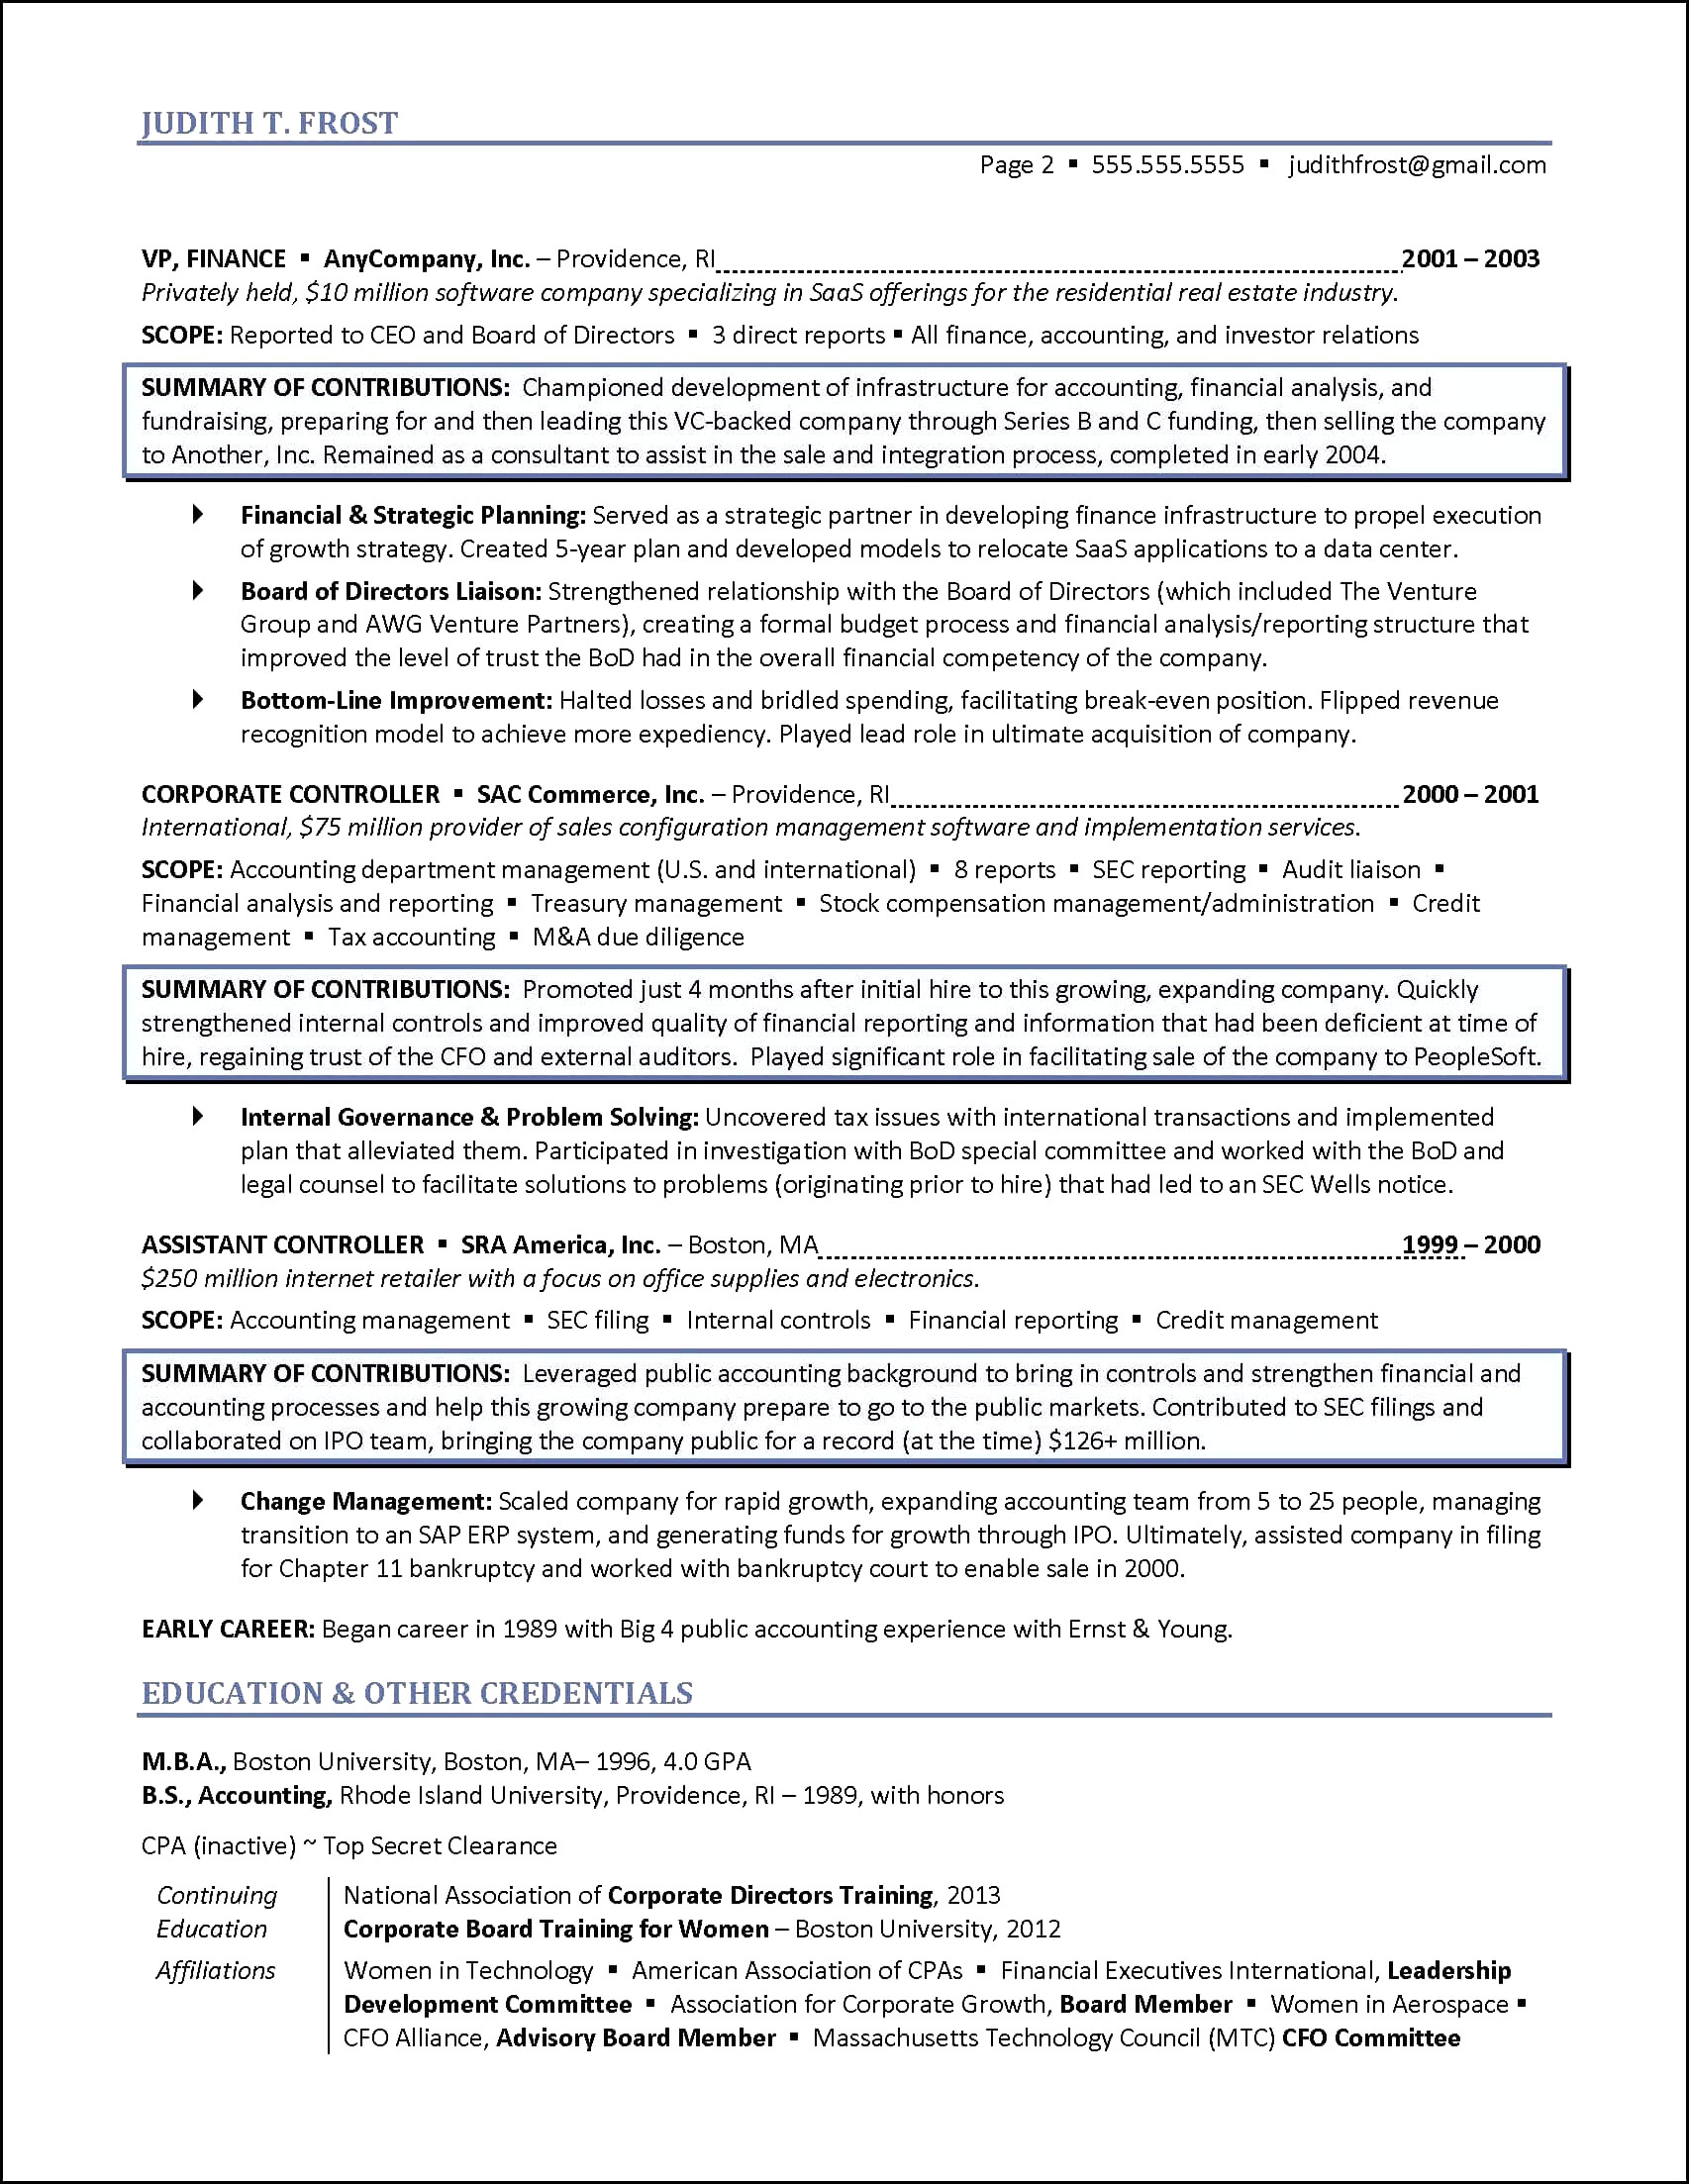 Search for Resumes - 47 Concepts Search for Resumes